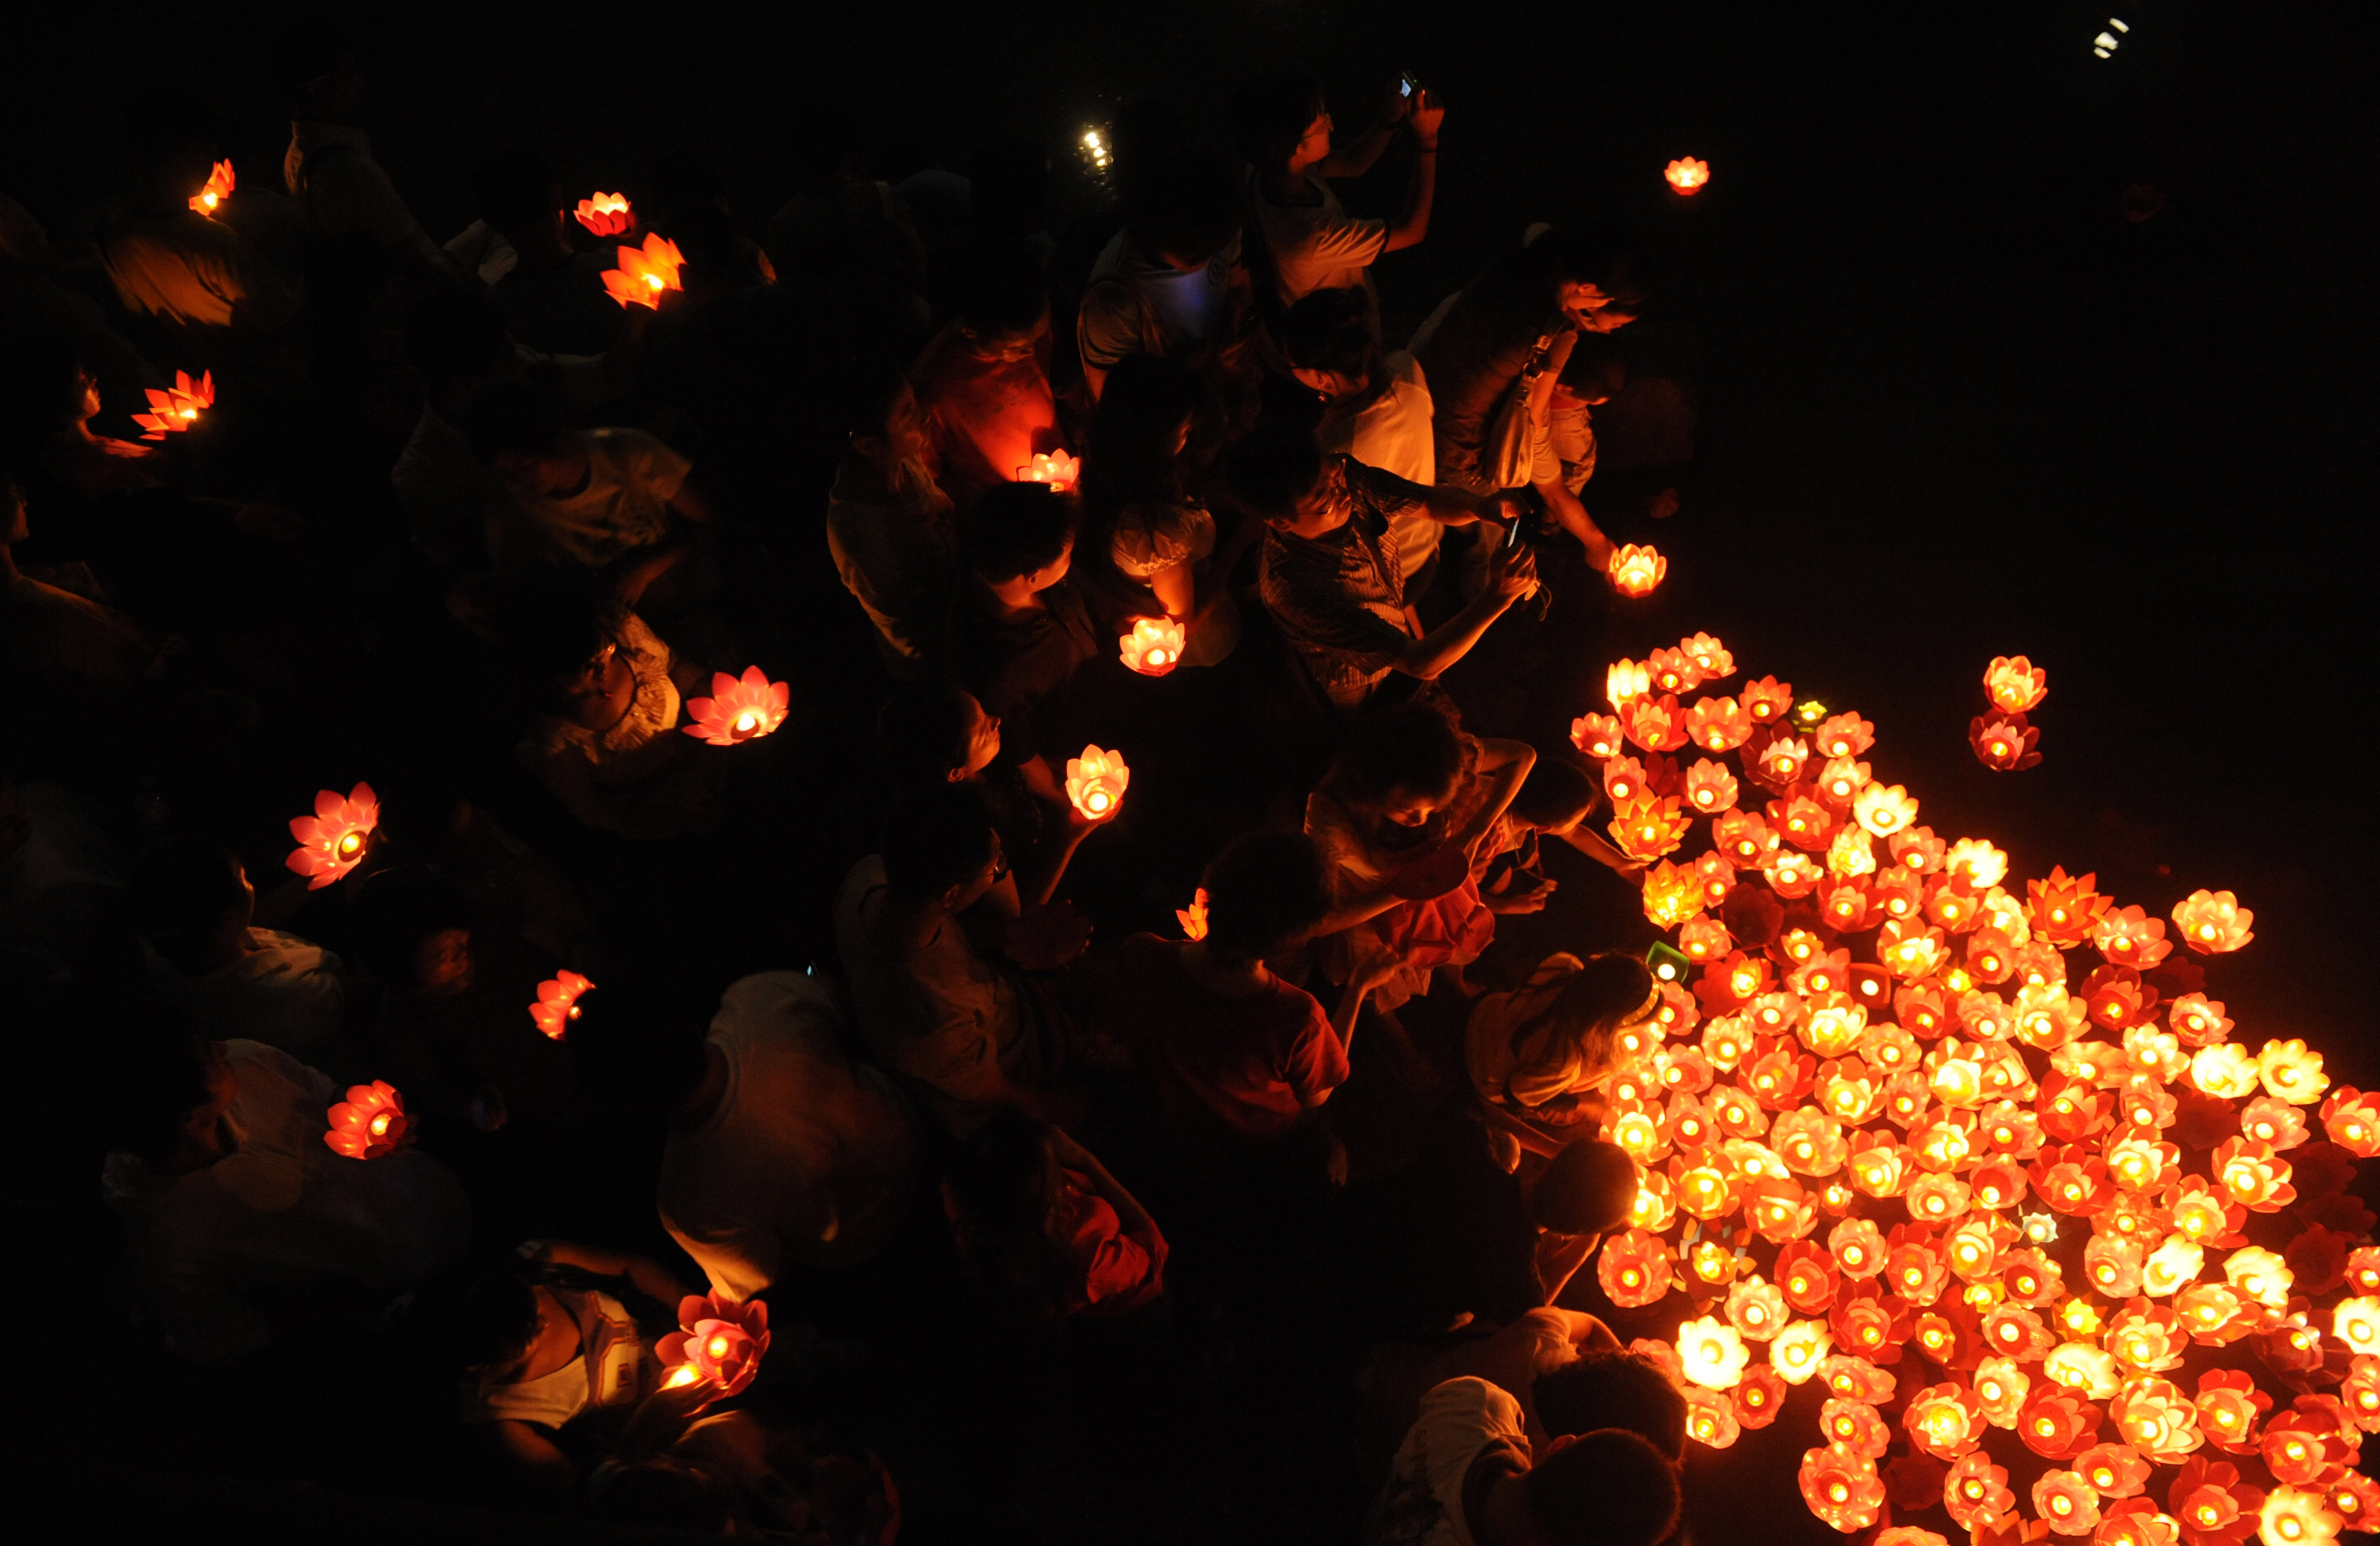 Residents lay candles on a river to mark the Mid-Autumn Festival on Sept. 14, 2008, in Chengdu, Sichuan province, China.